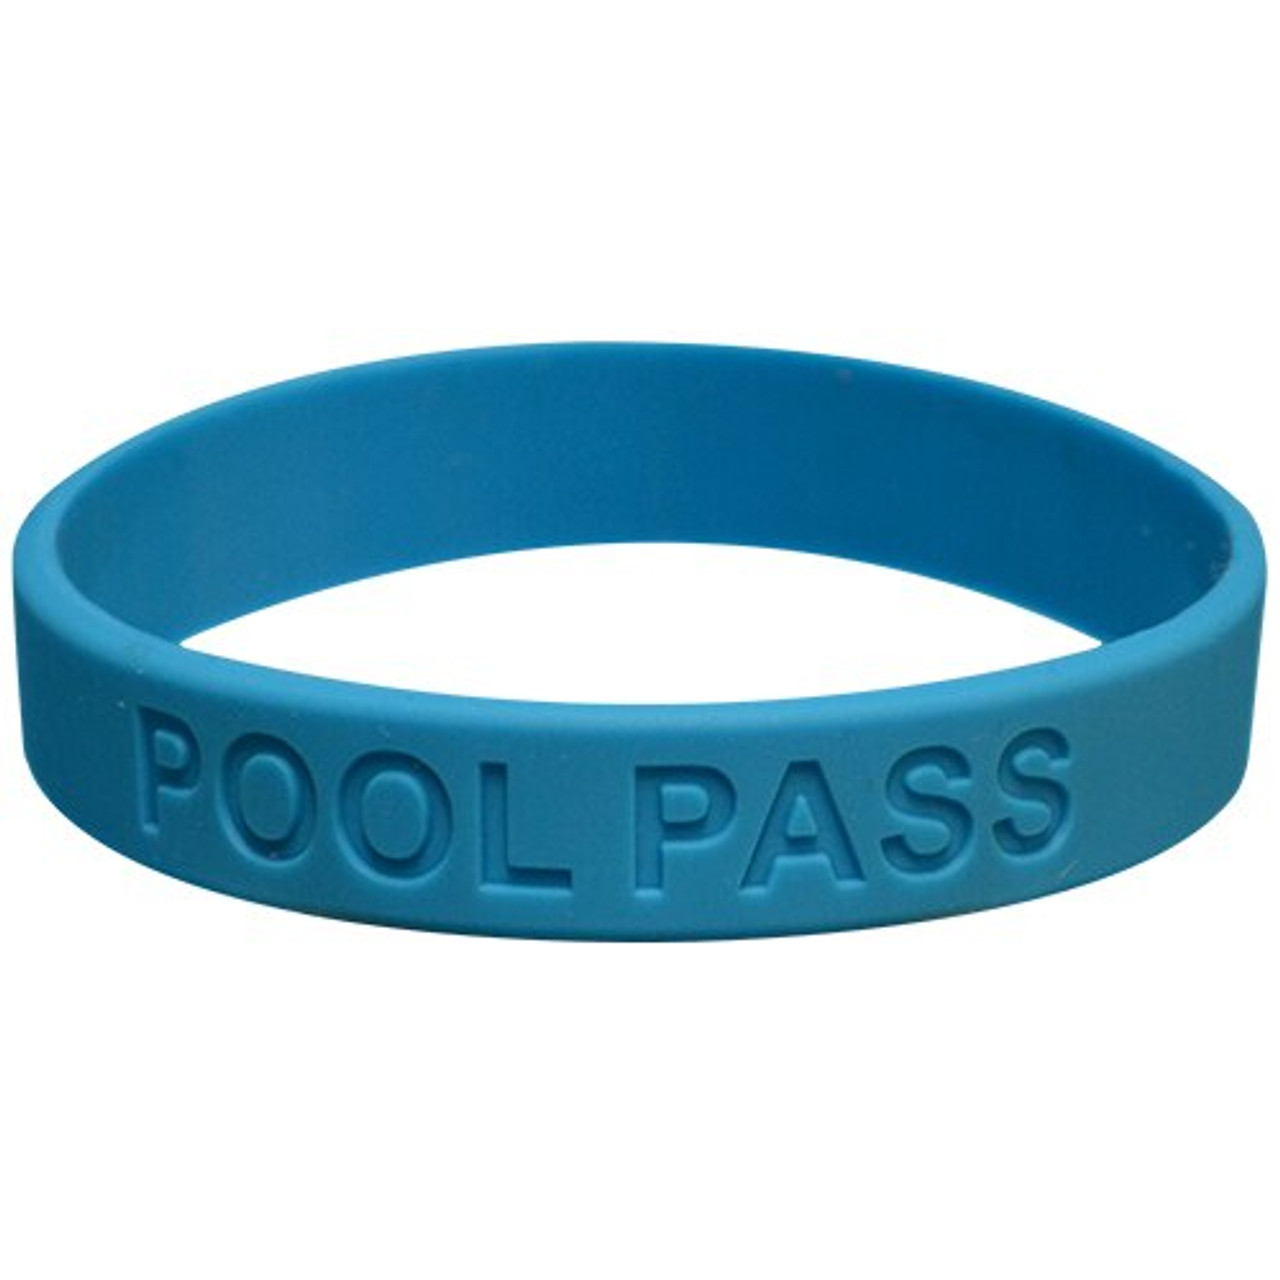 Adult Silicone Pool Pass (Blue)